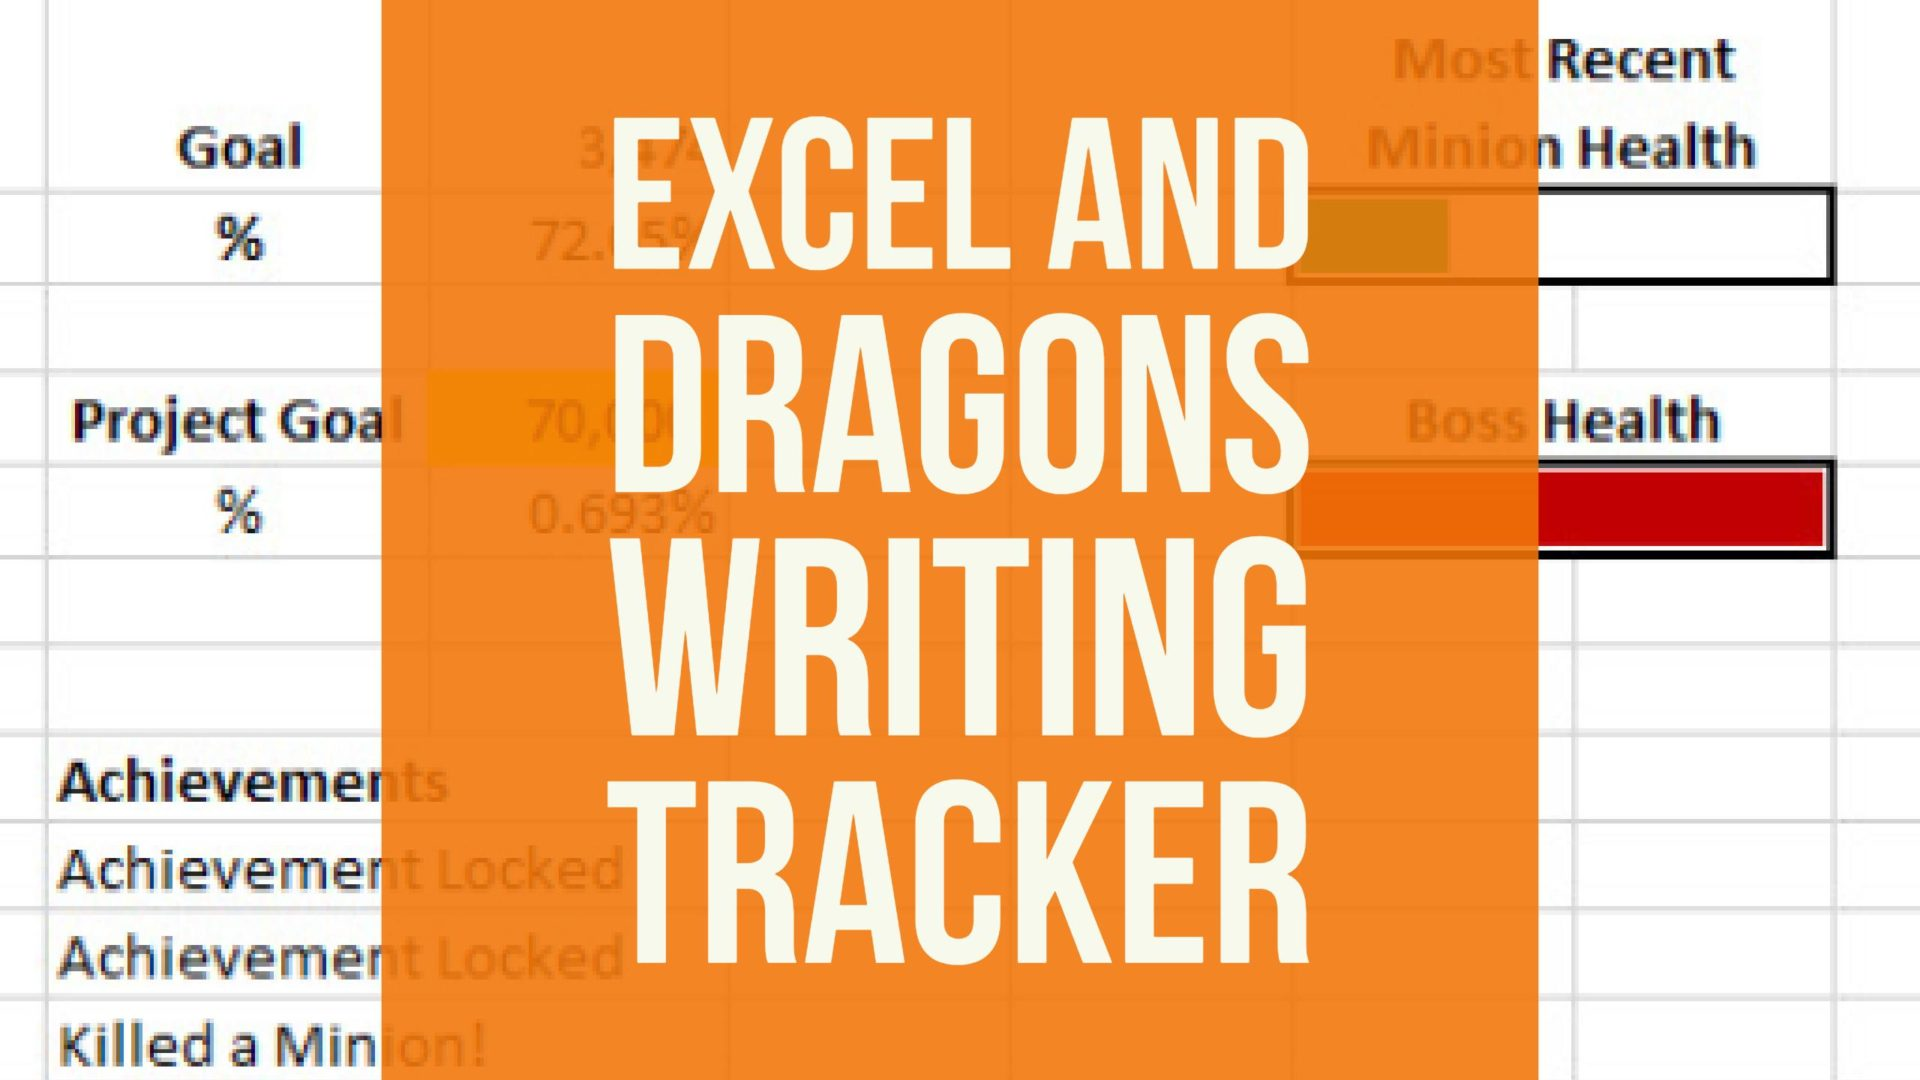 Excel and Dragons Writing Tracker